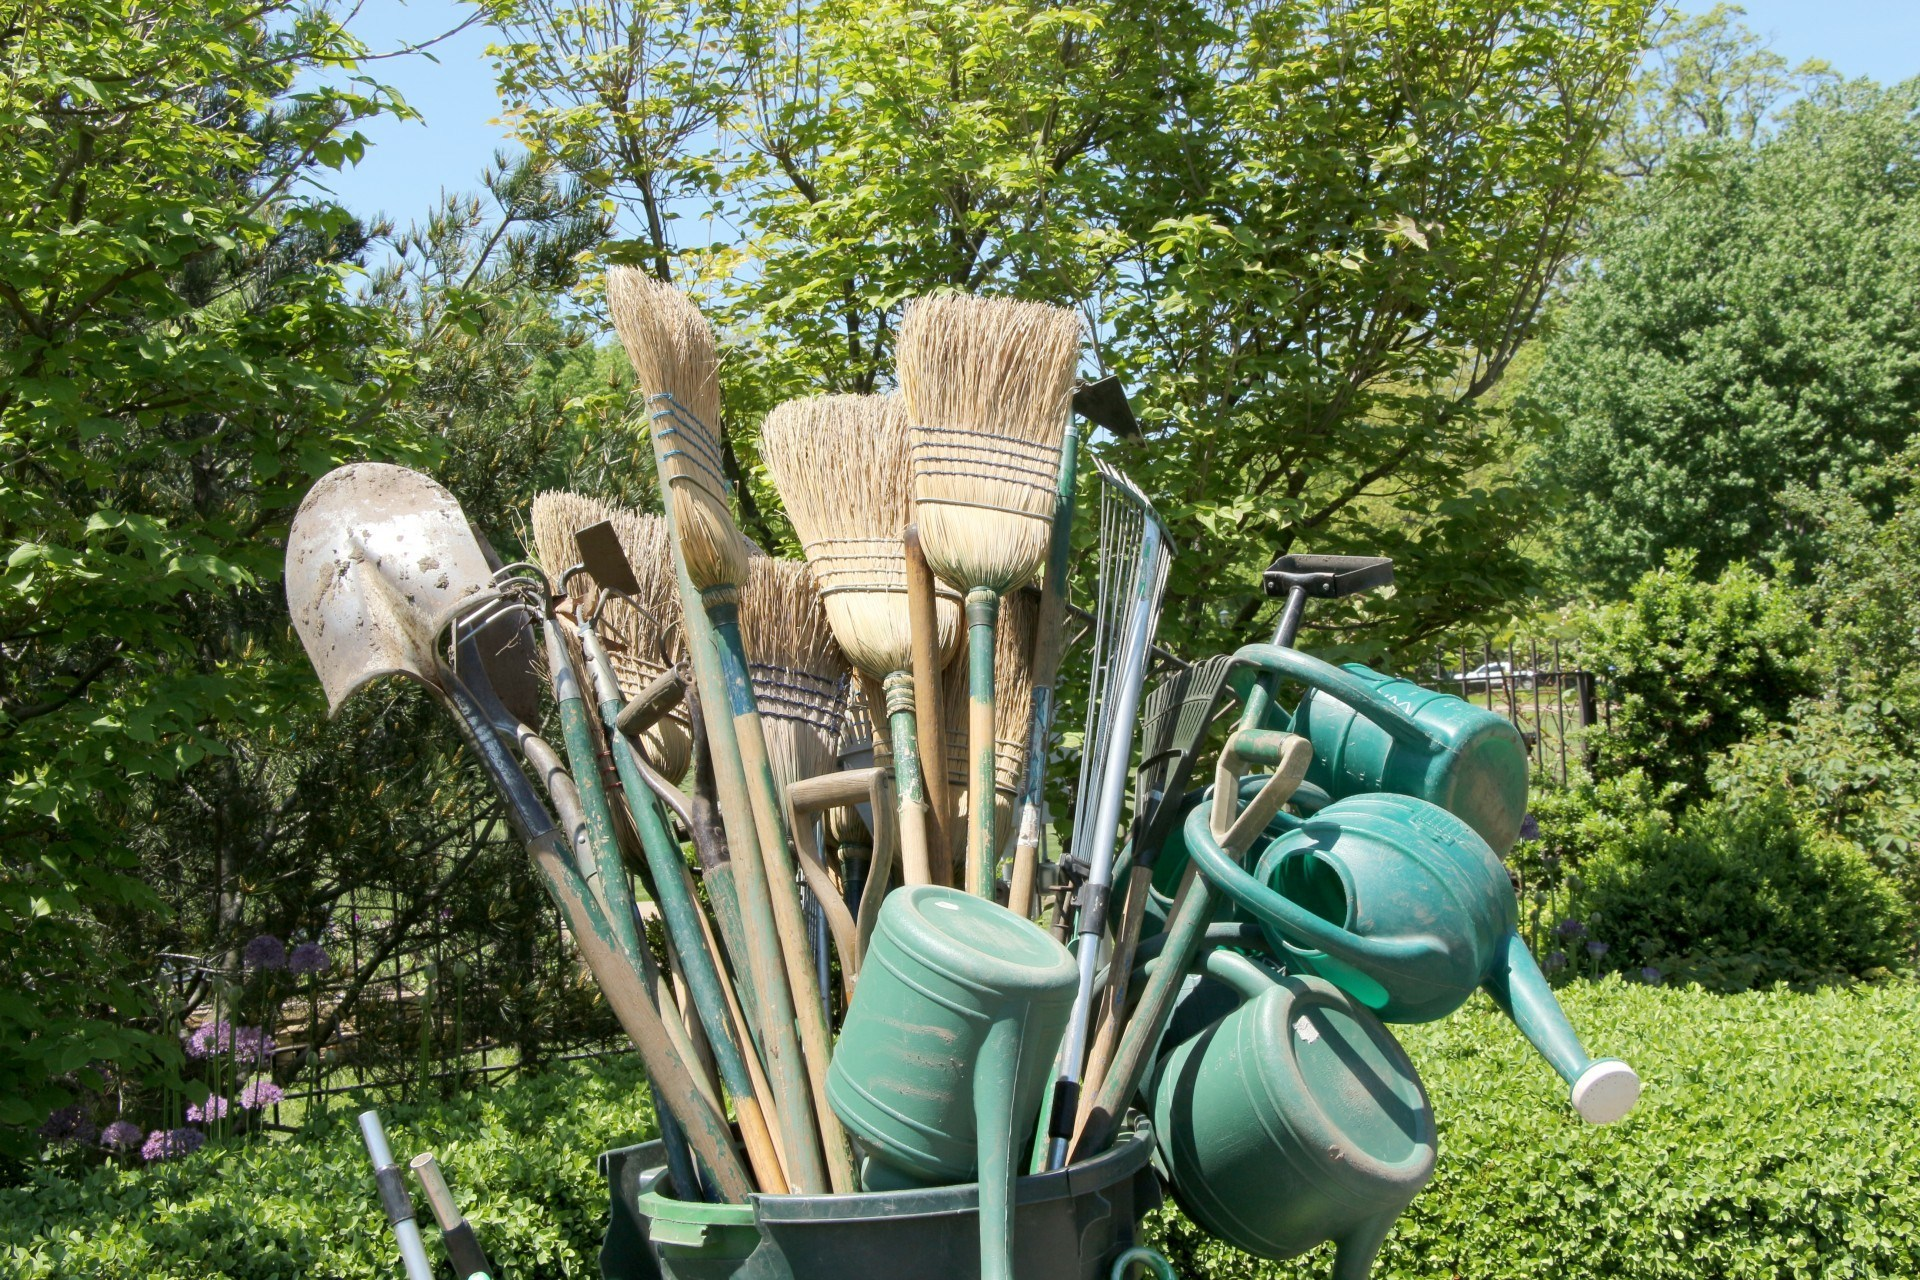 gardening-tools-bundle of gardening tools in a garden